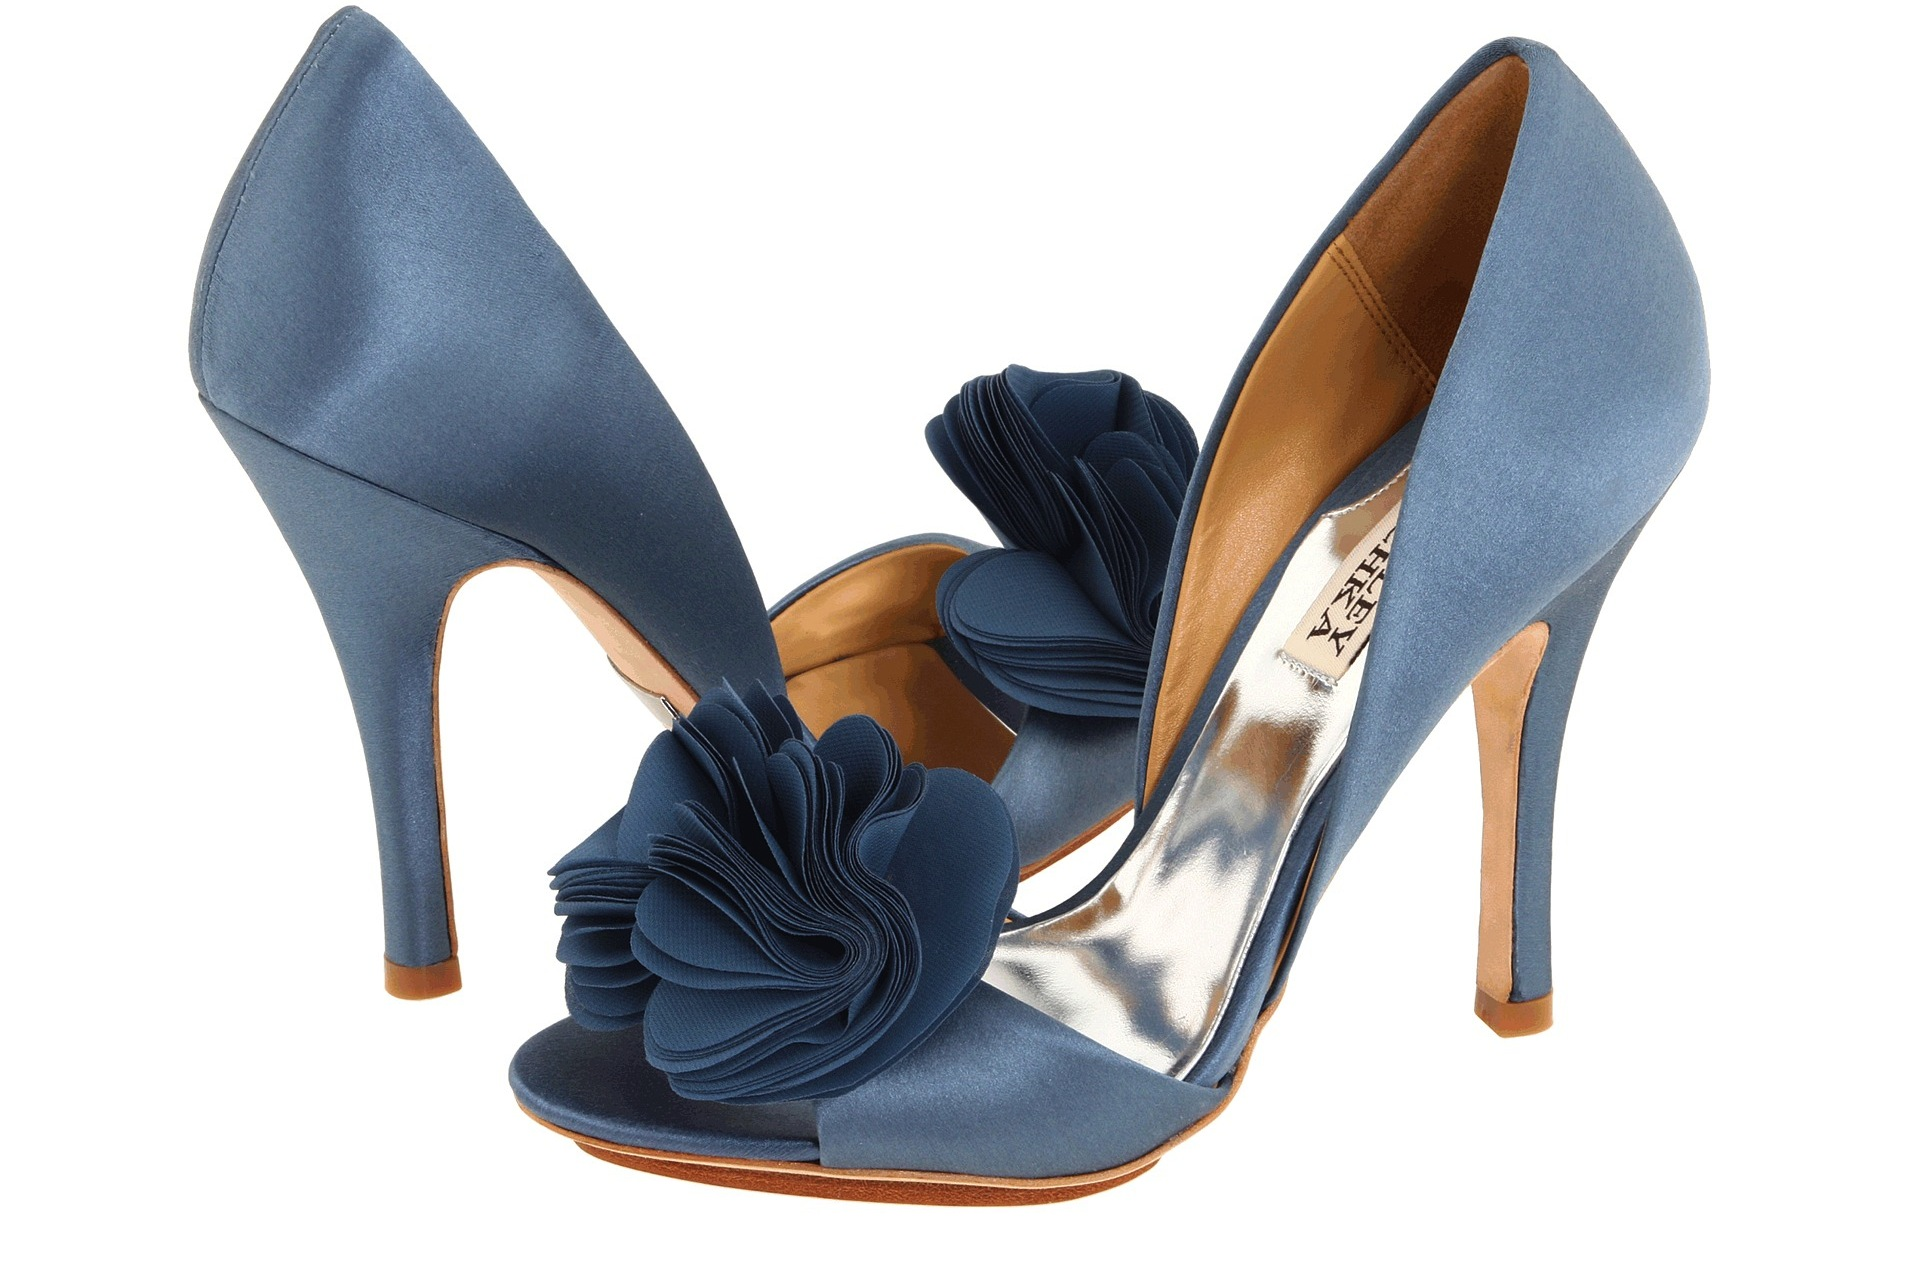 Blue Wedding Shoes For Under 200 Slate Satin With Floral